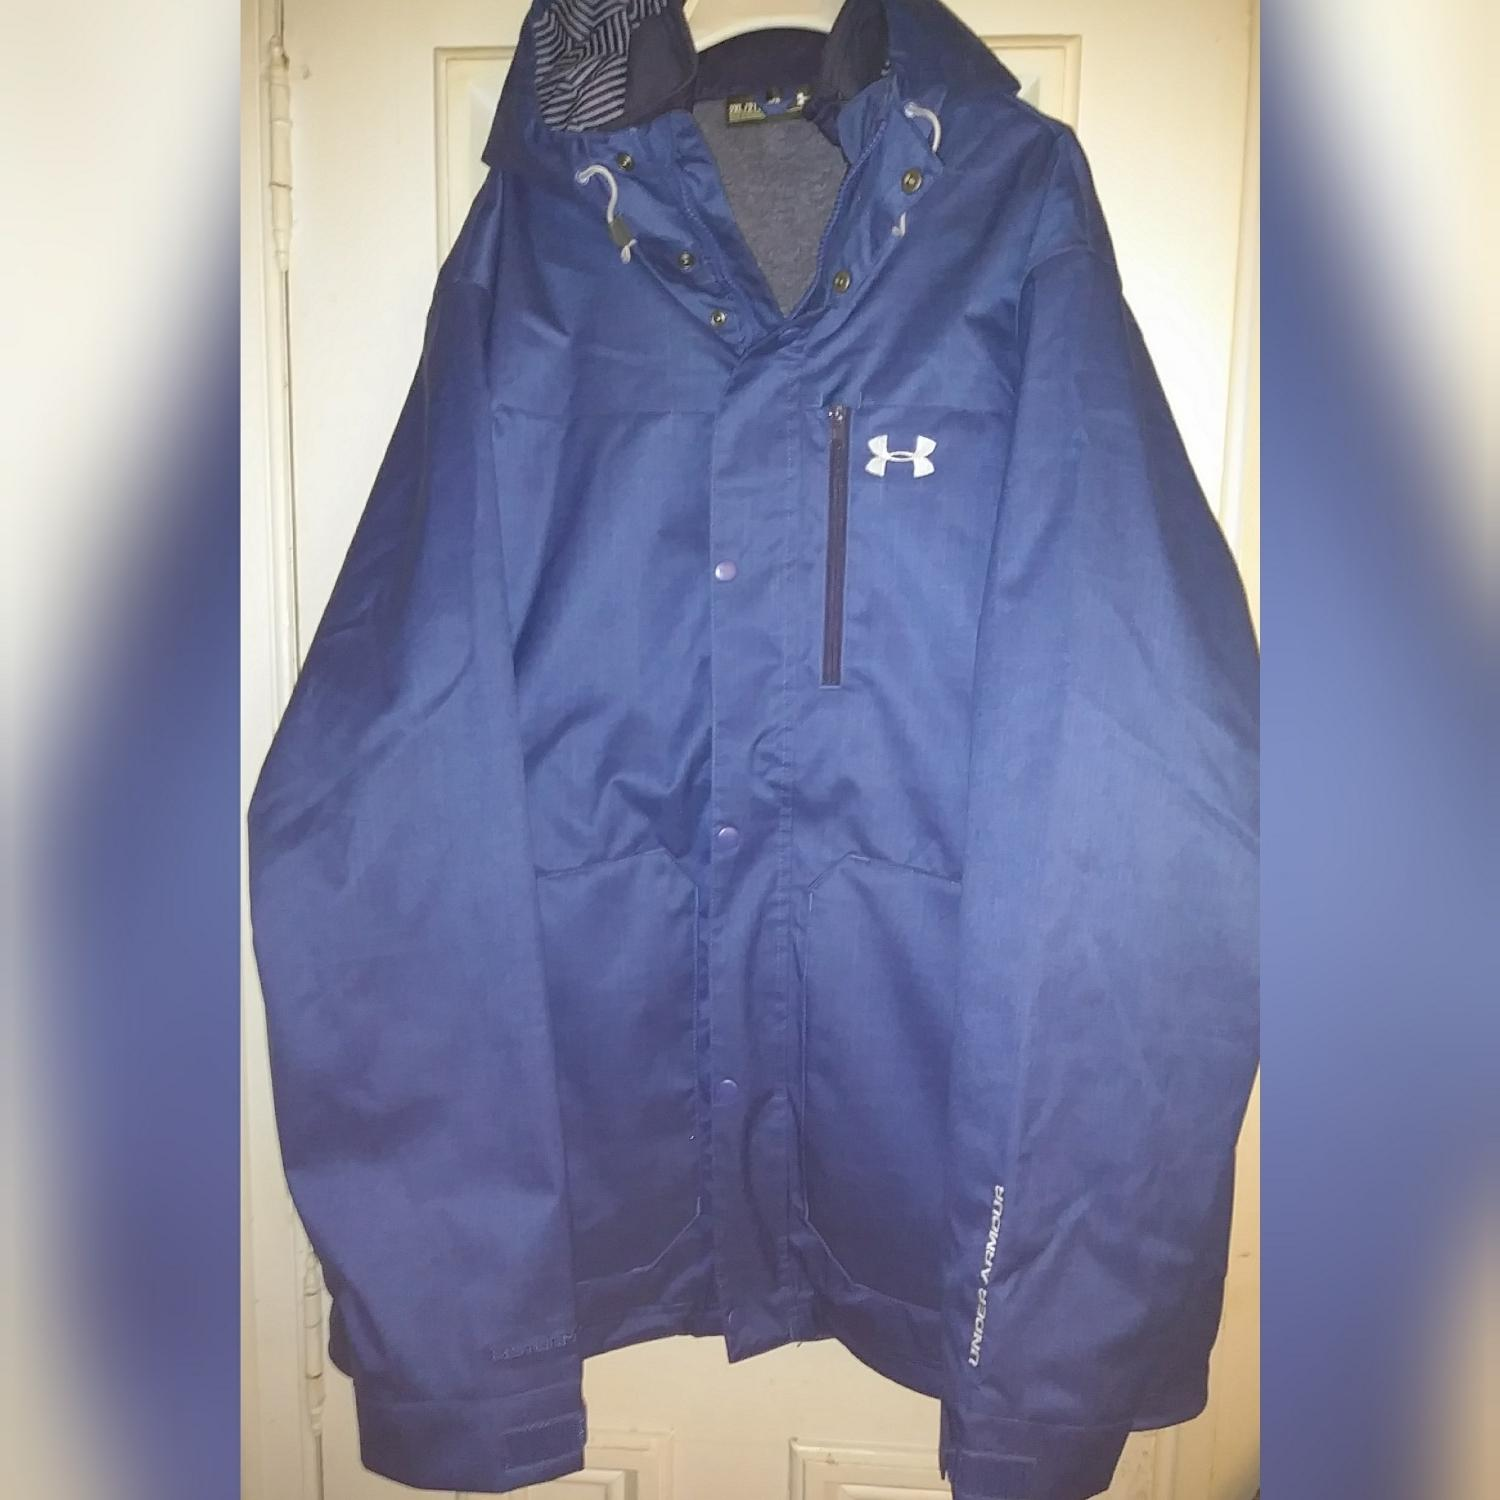 armour blue cold gear storm3 3in1 ski coat